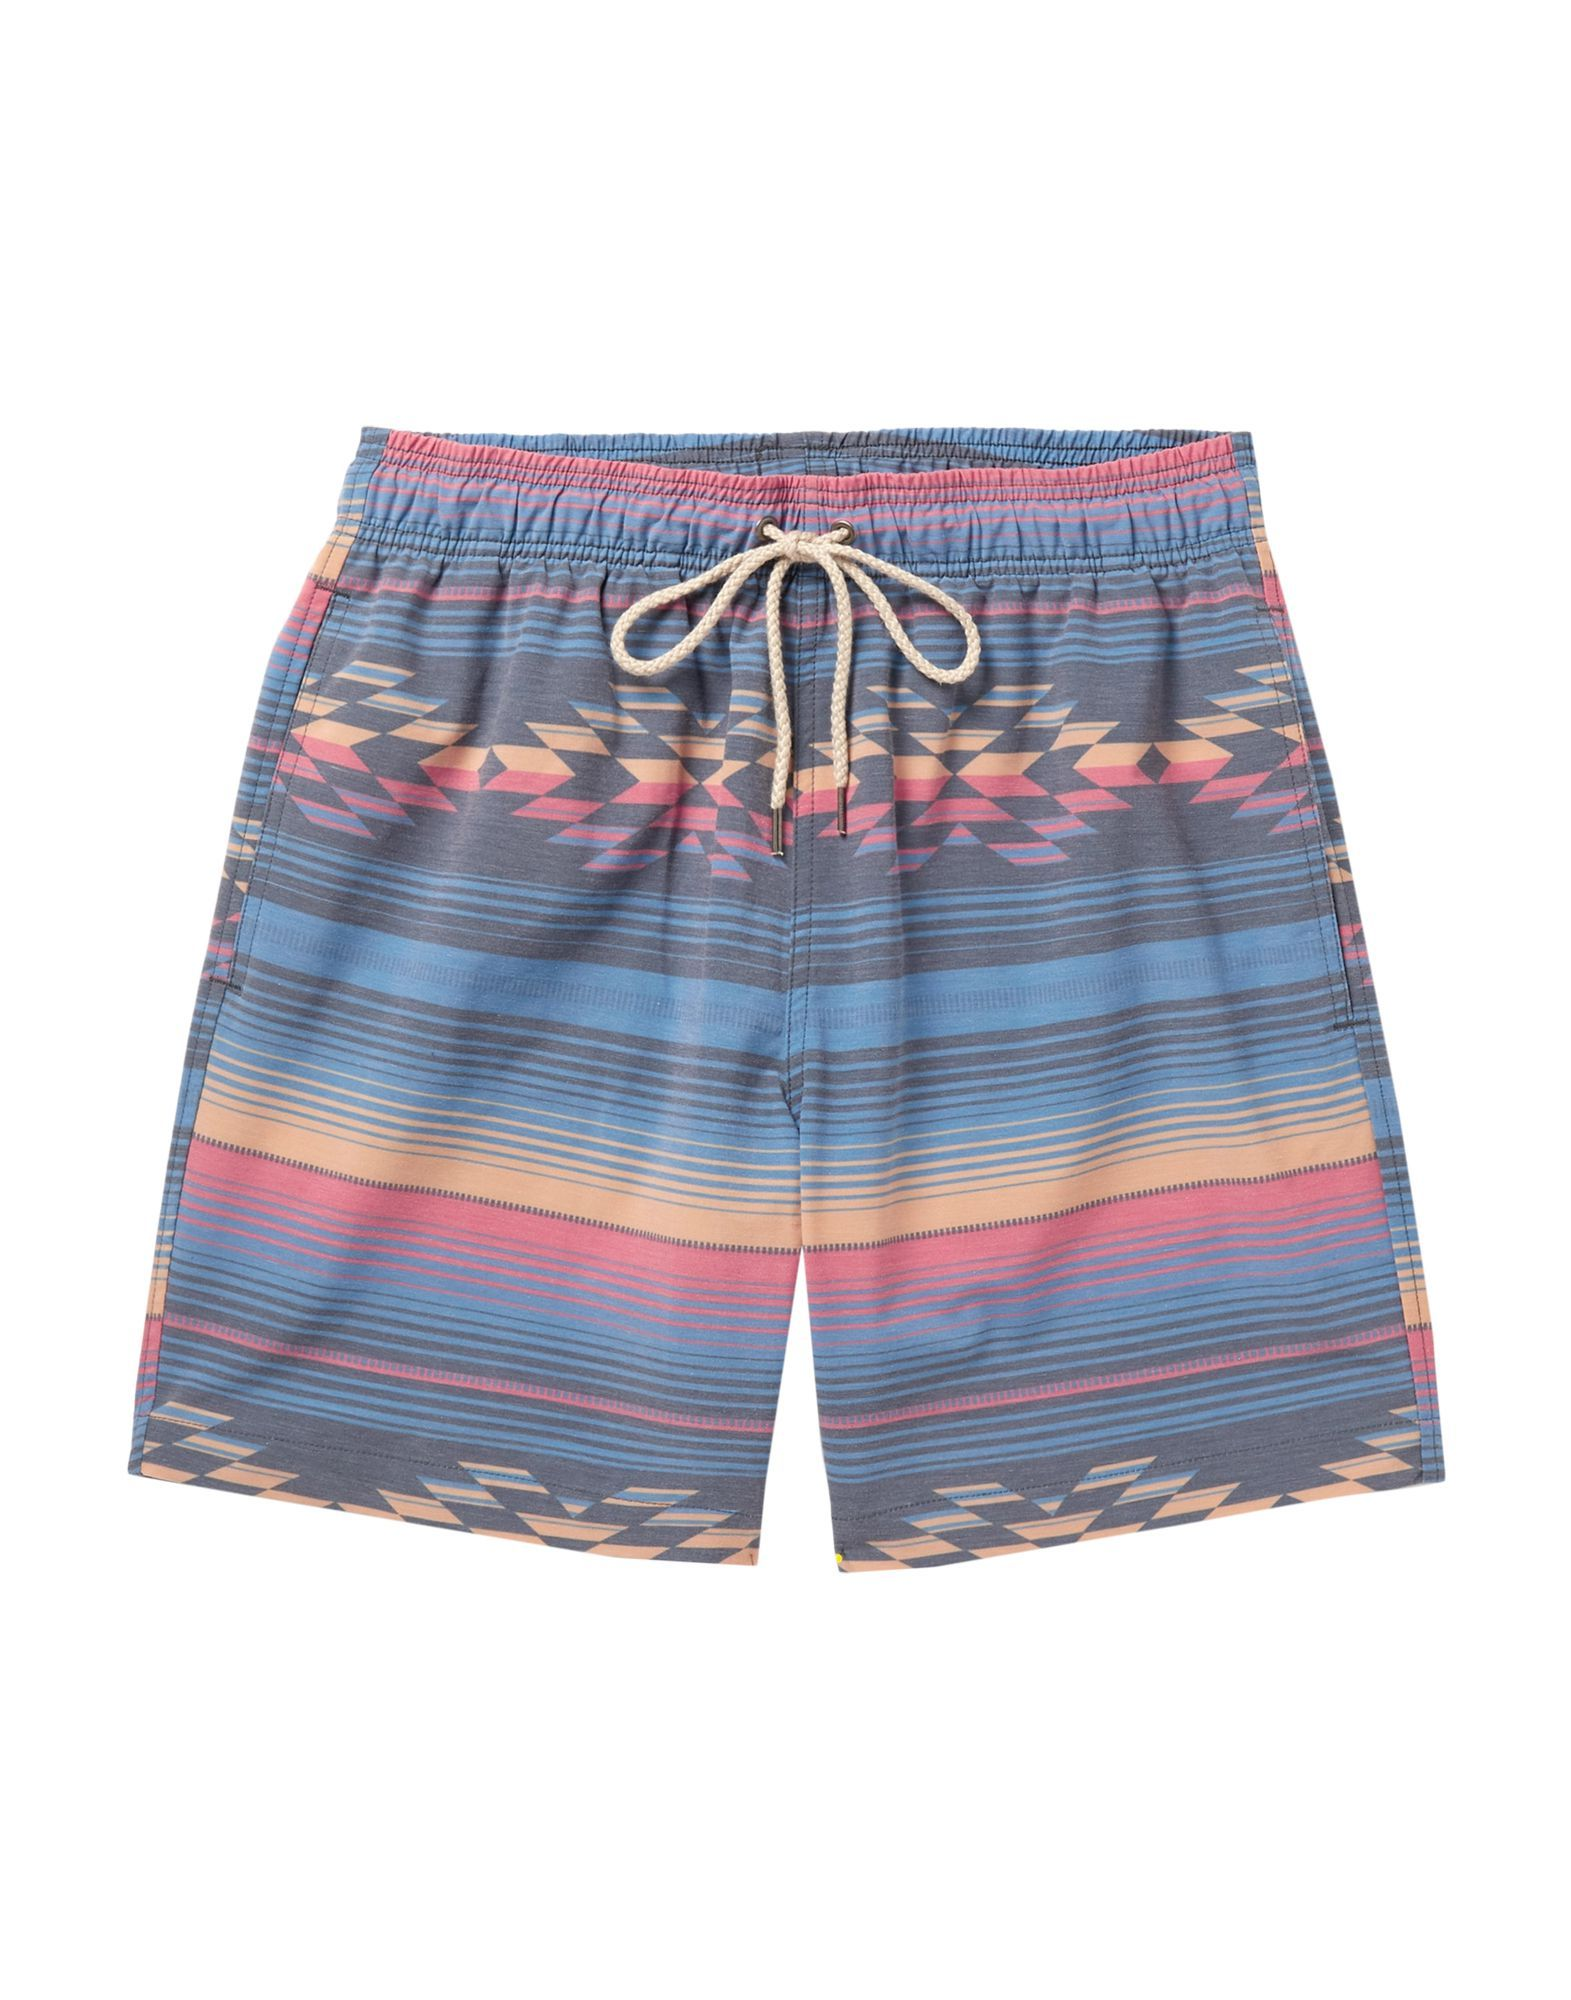 8e1813acb78ee FAHERTY SWIM TRUNKS. #faherty #cloth | Faherty in 2019 | Swim trunks ...